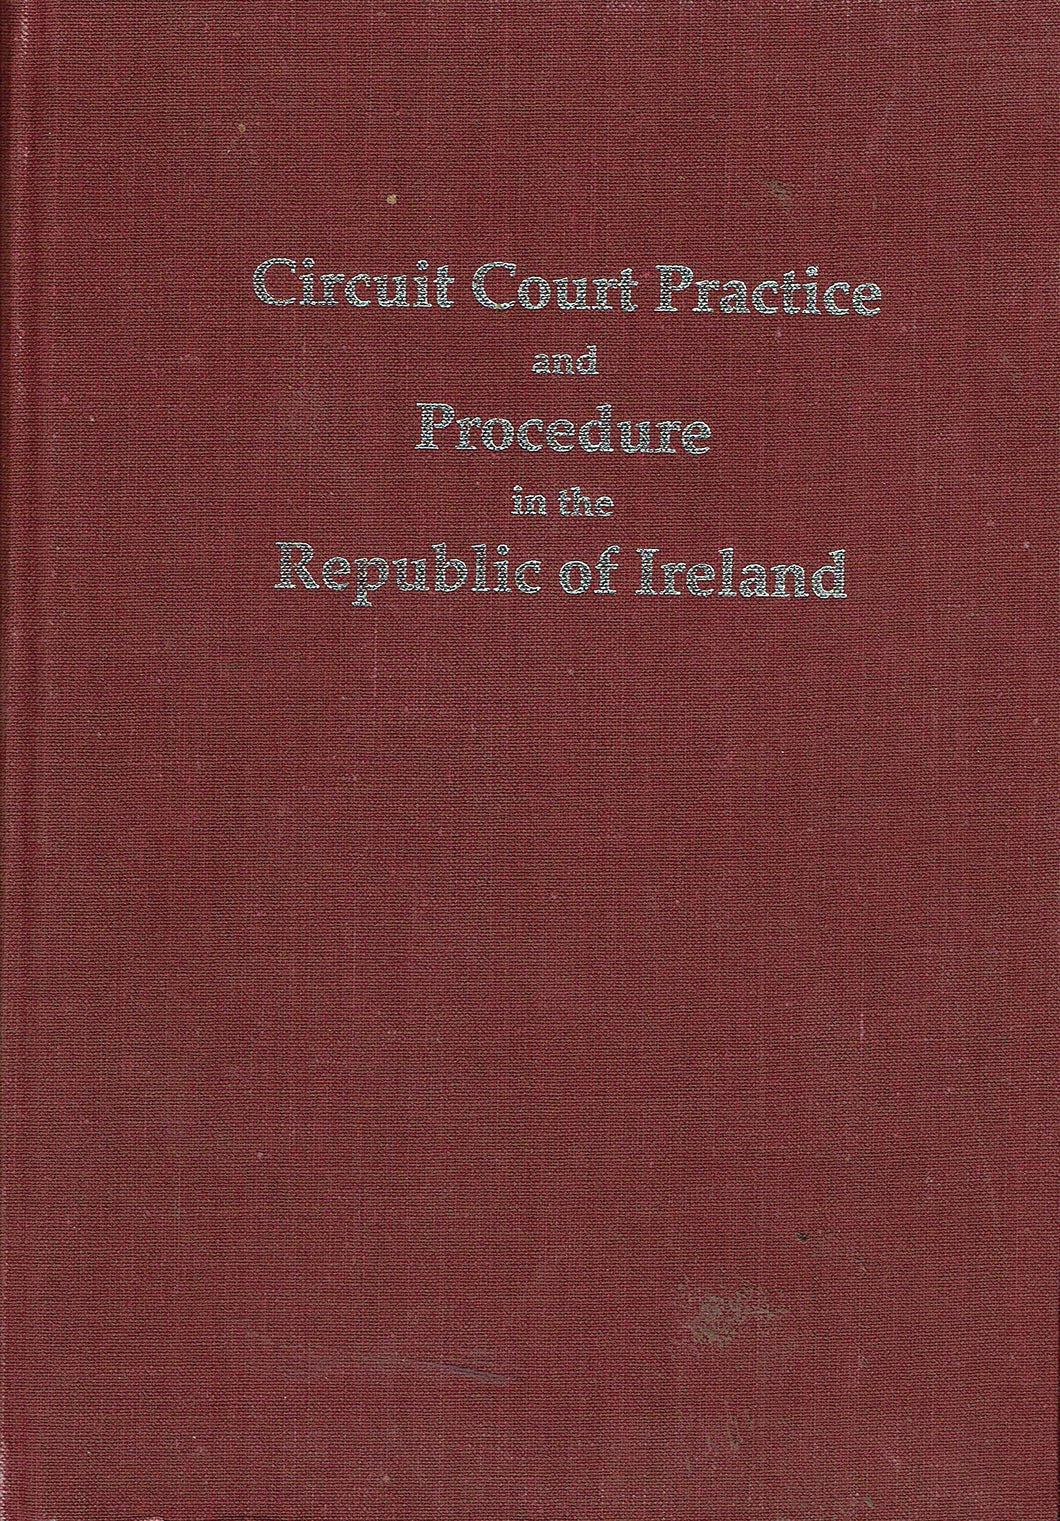 Circuit court practice and procedure in the Republic of Ireland